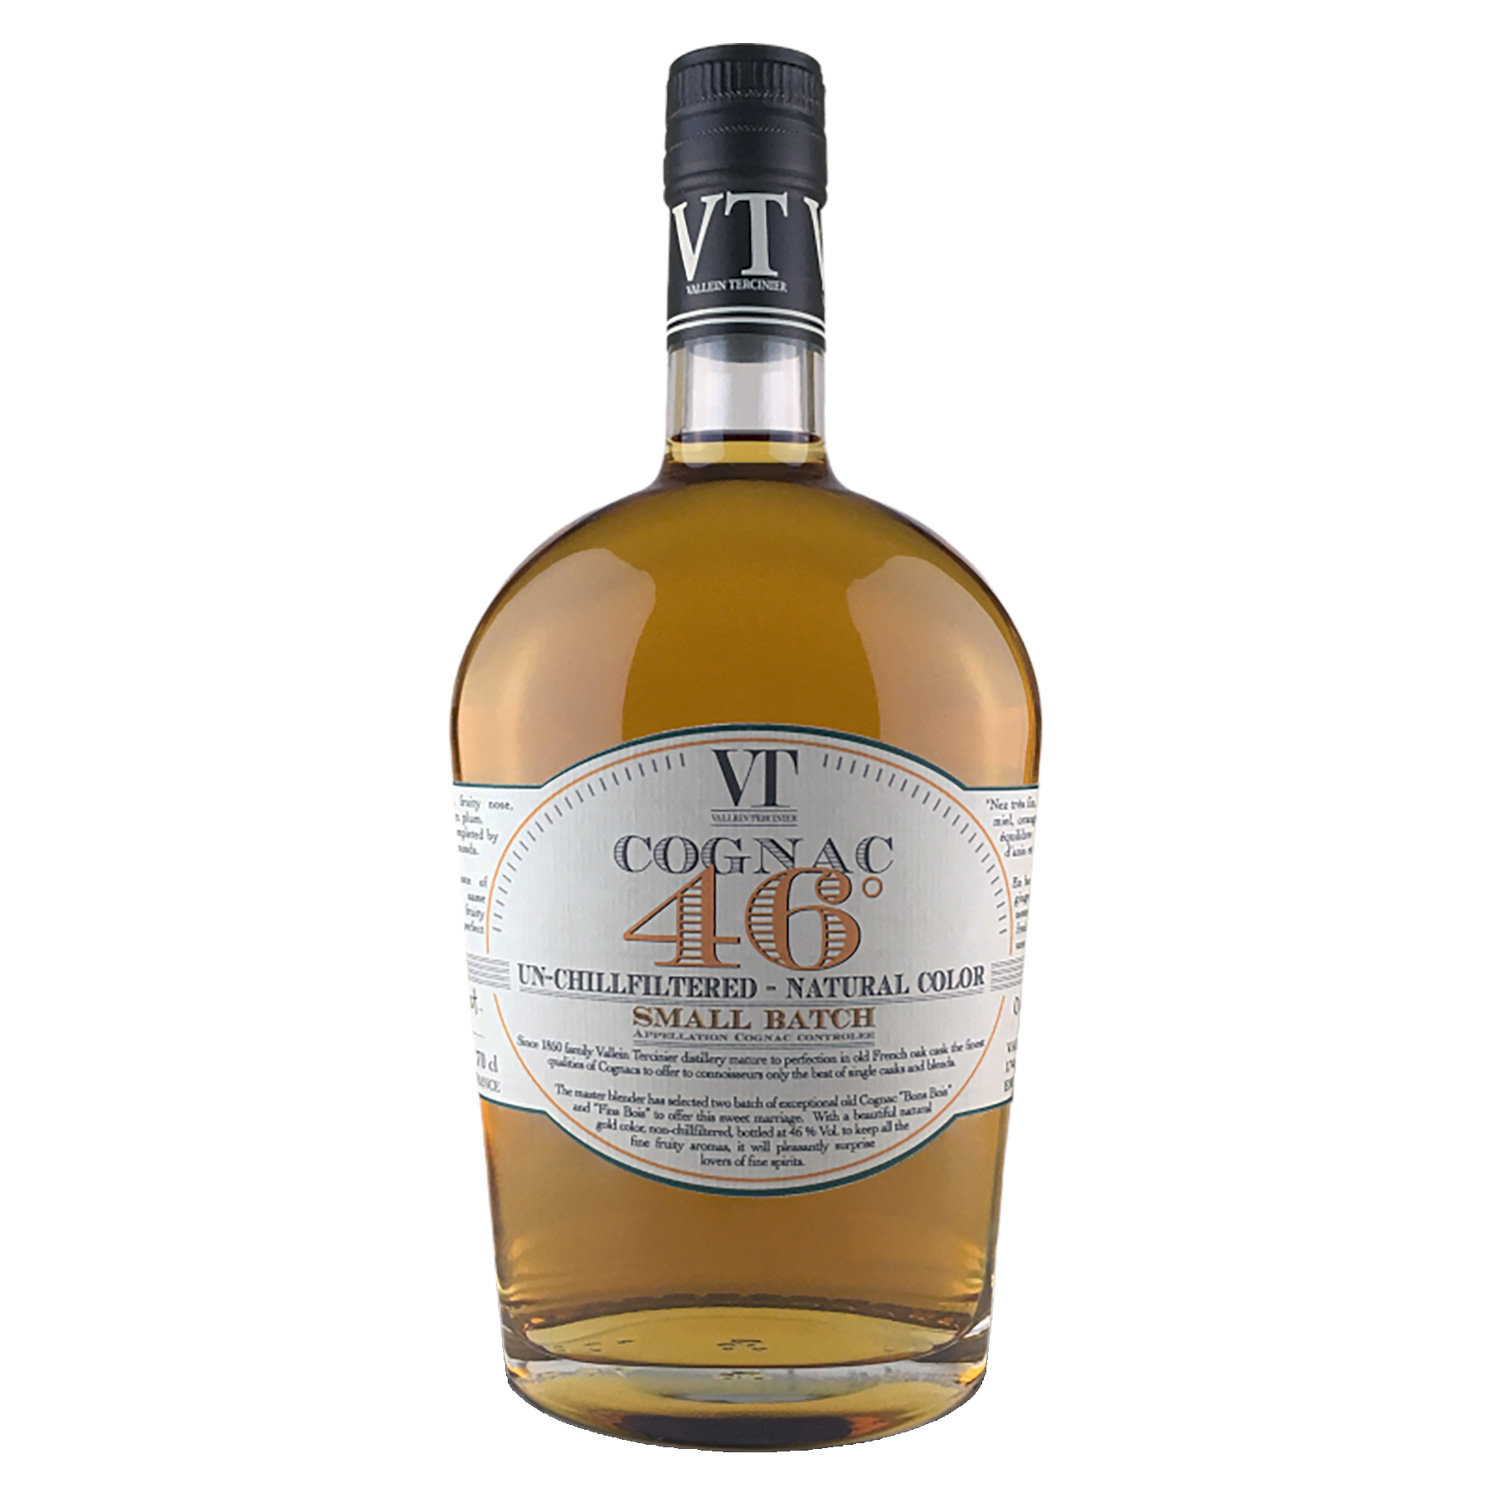 Cognac - Small Batch - Vallein Tercinier - 46° - 70cl